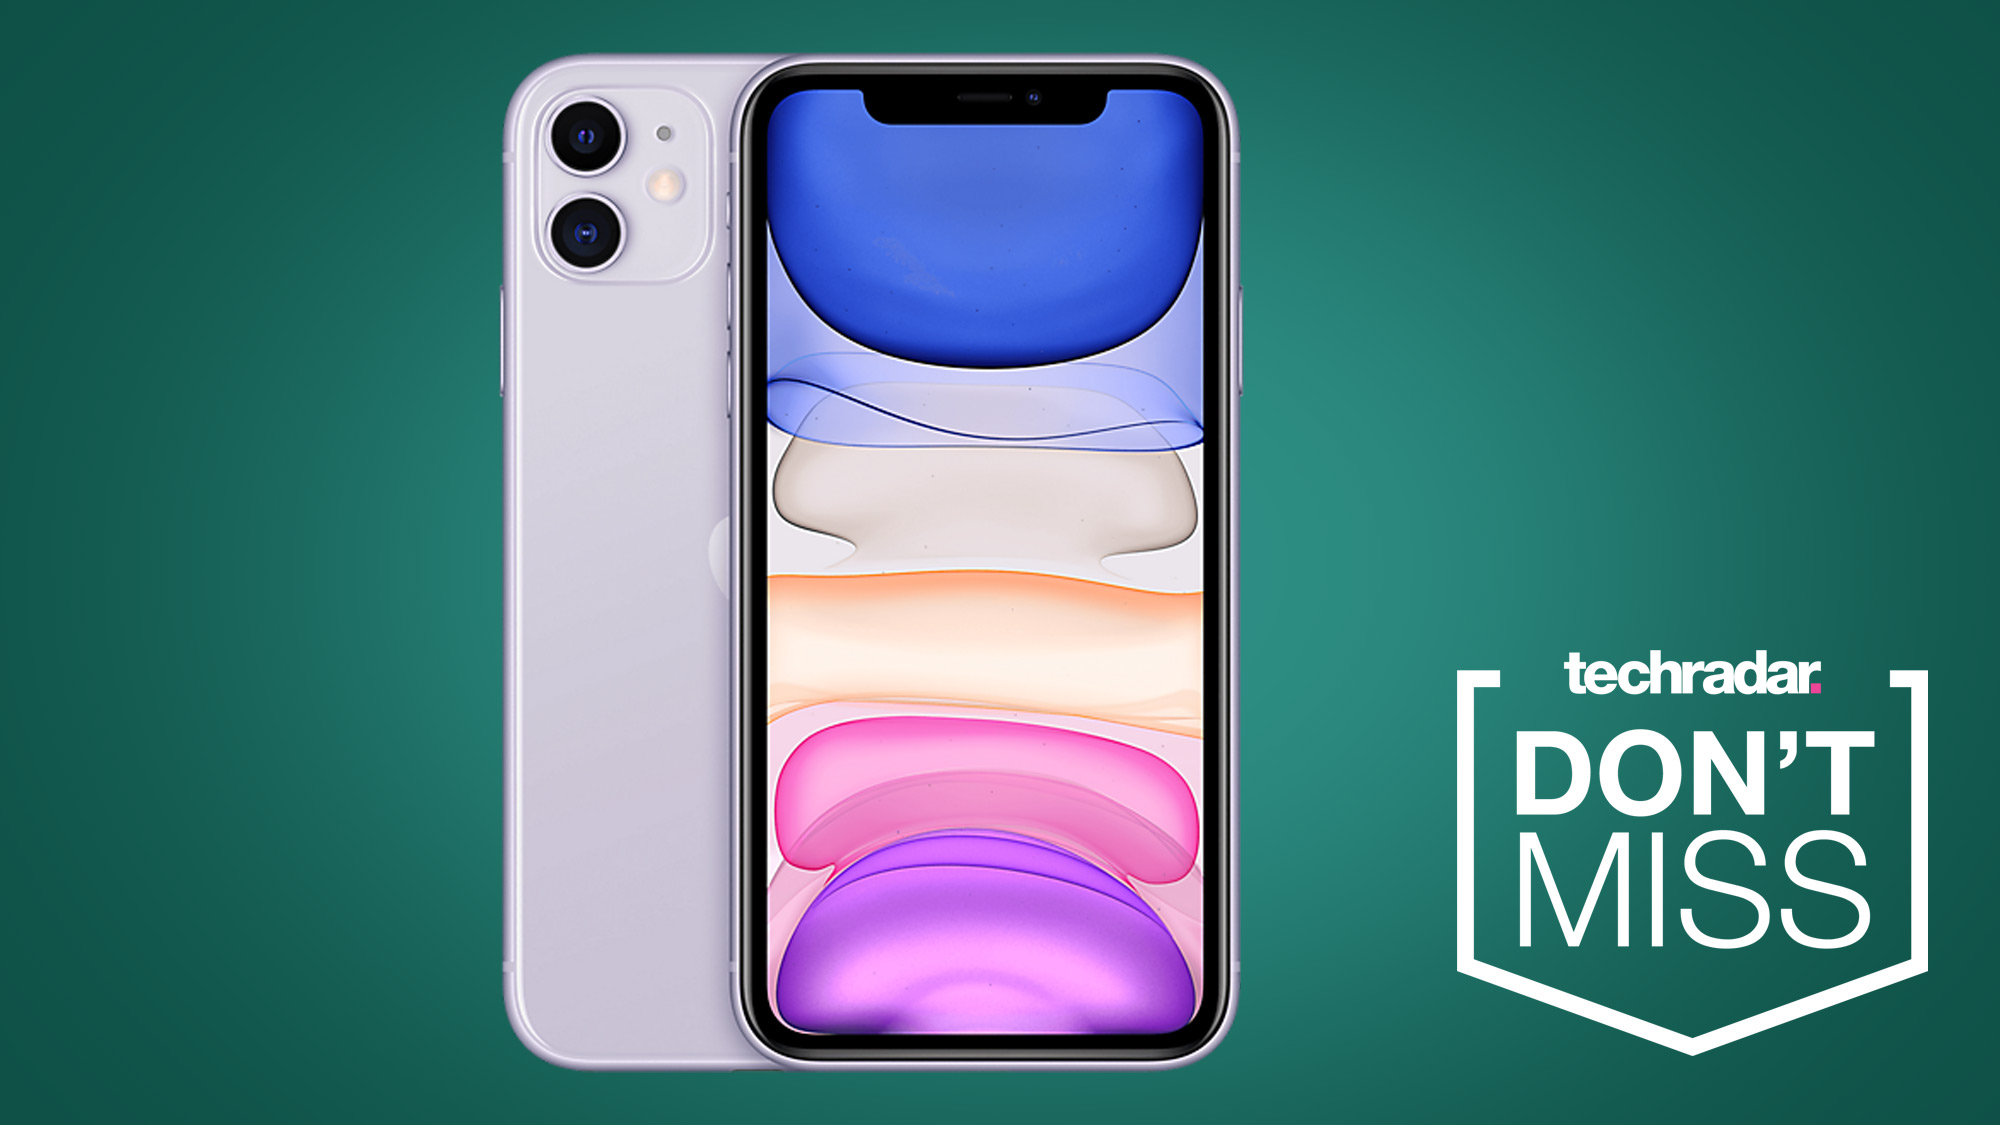 Iphone 11 Deals On Ee Are Looking Extremely Affordable Right Now Techradar